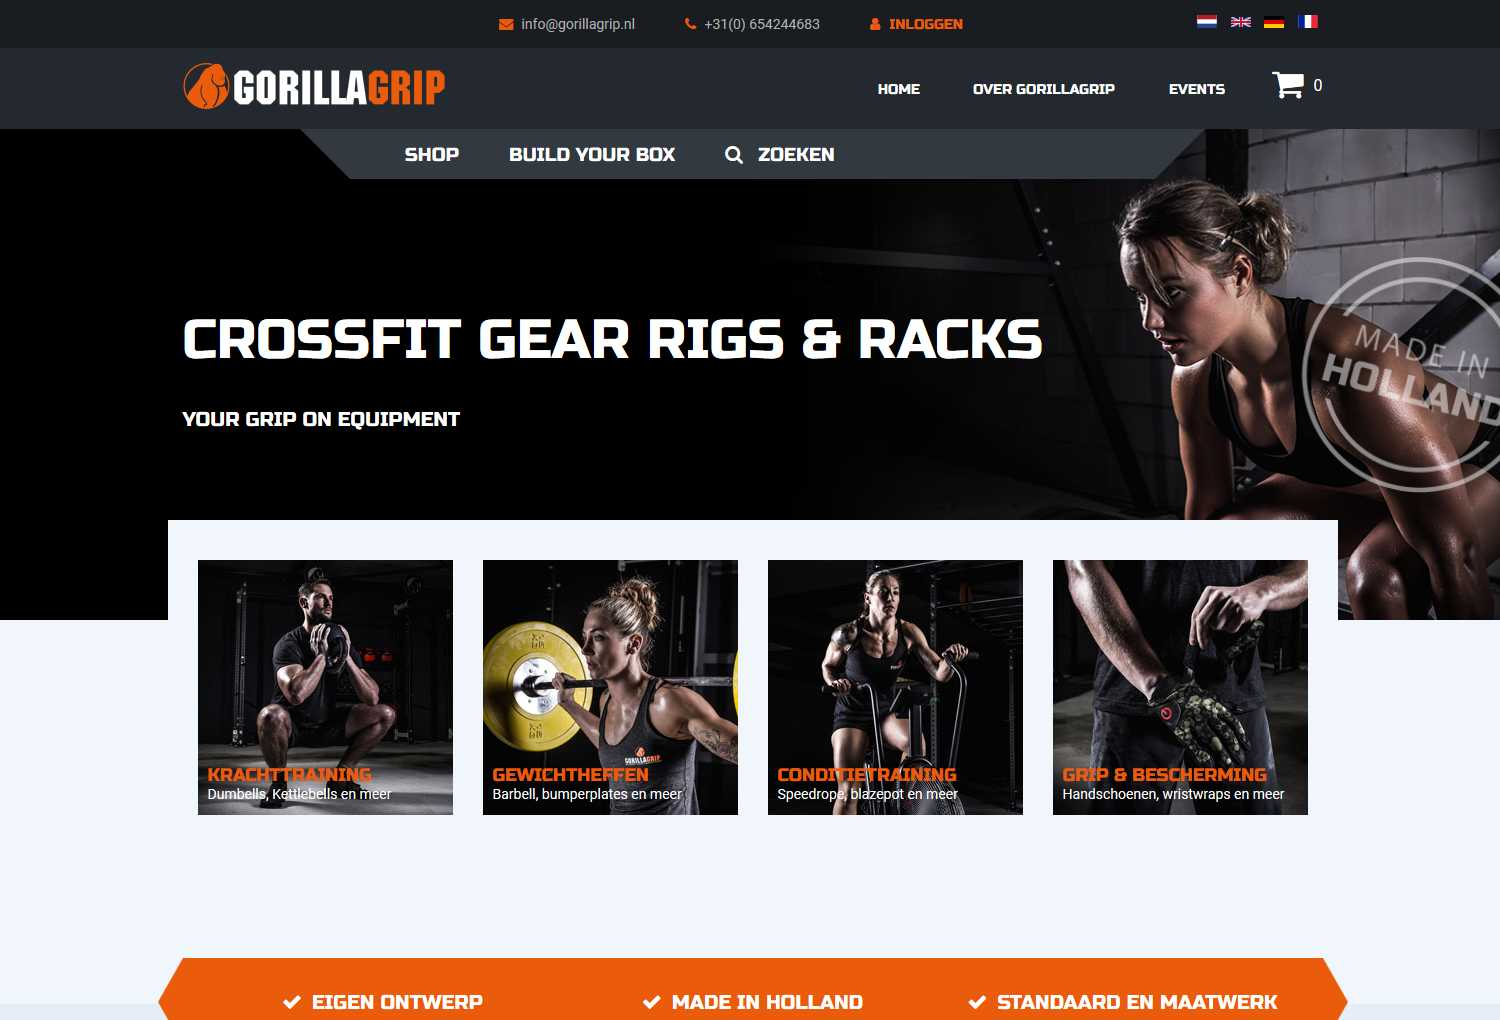 GorillaGrip